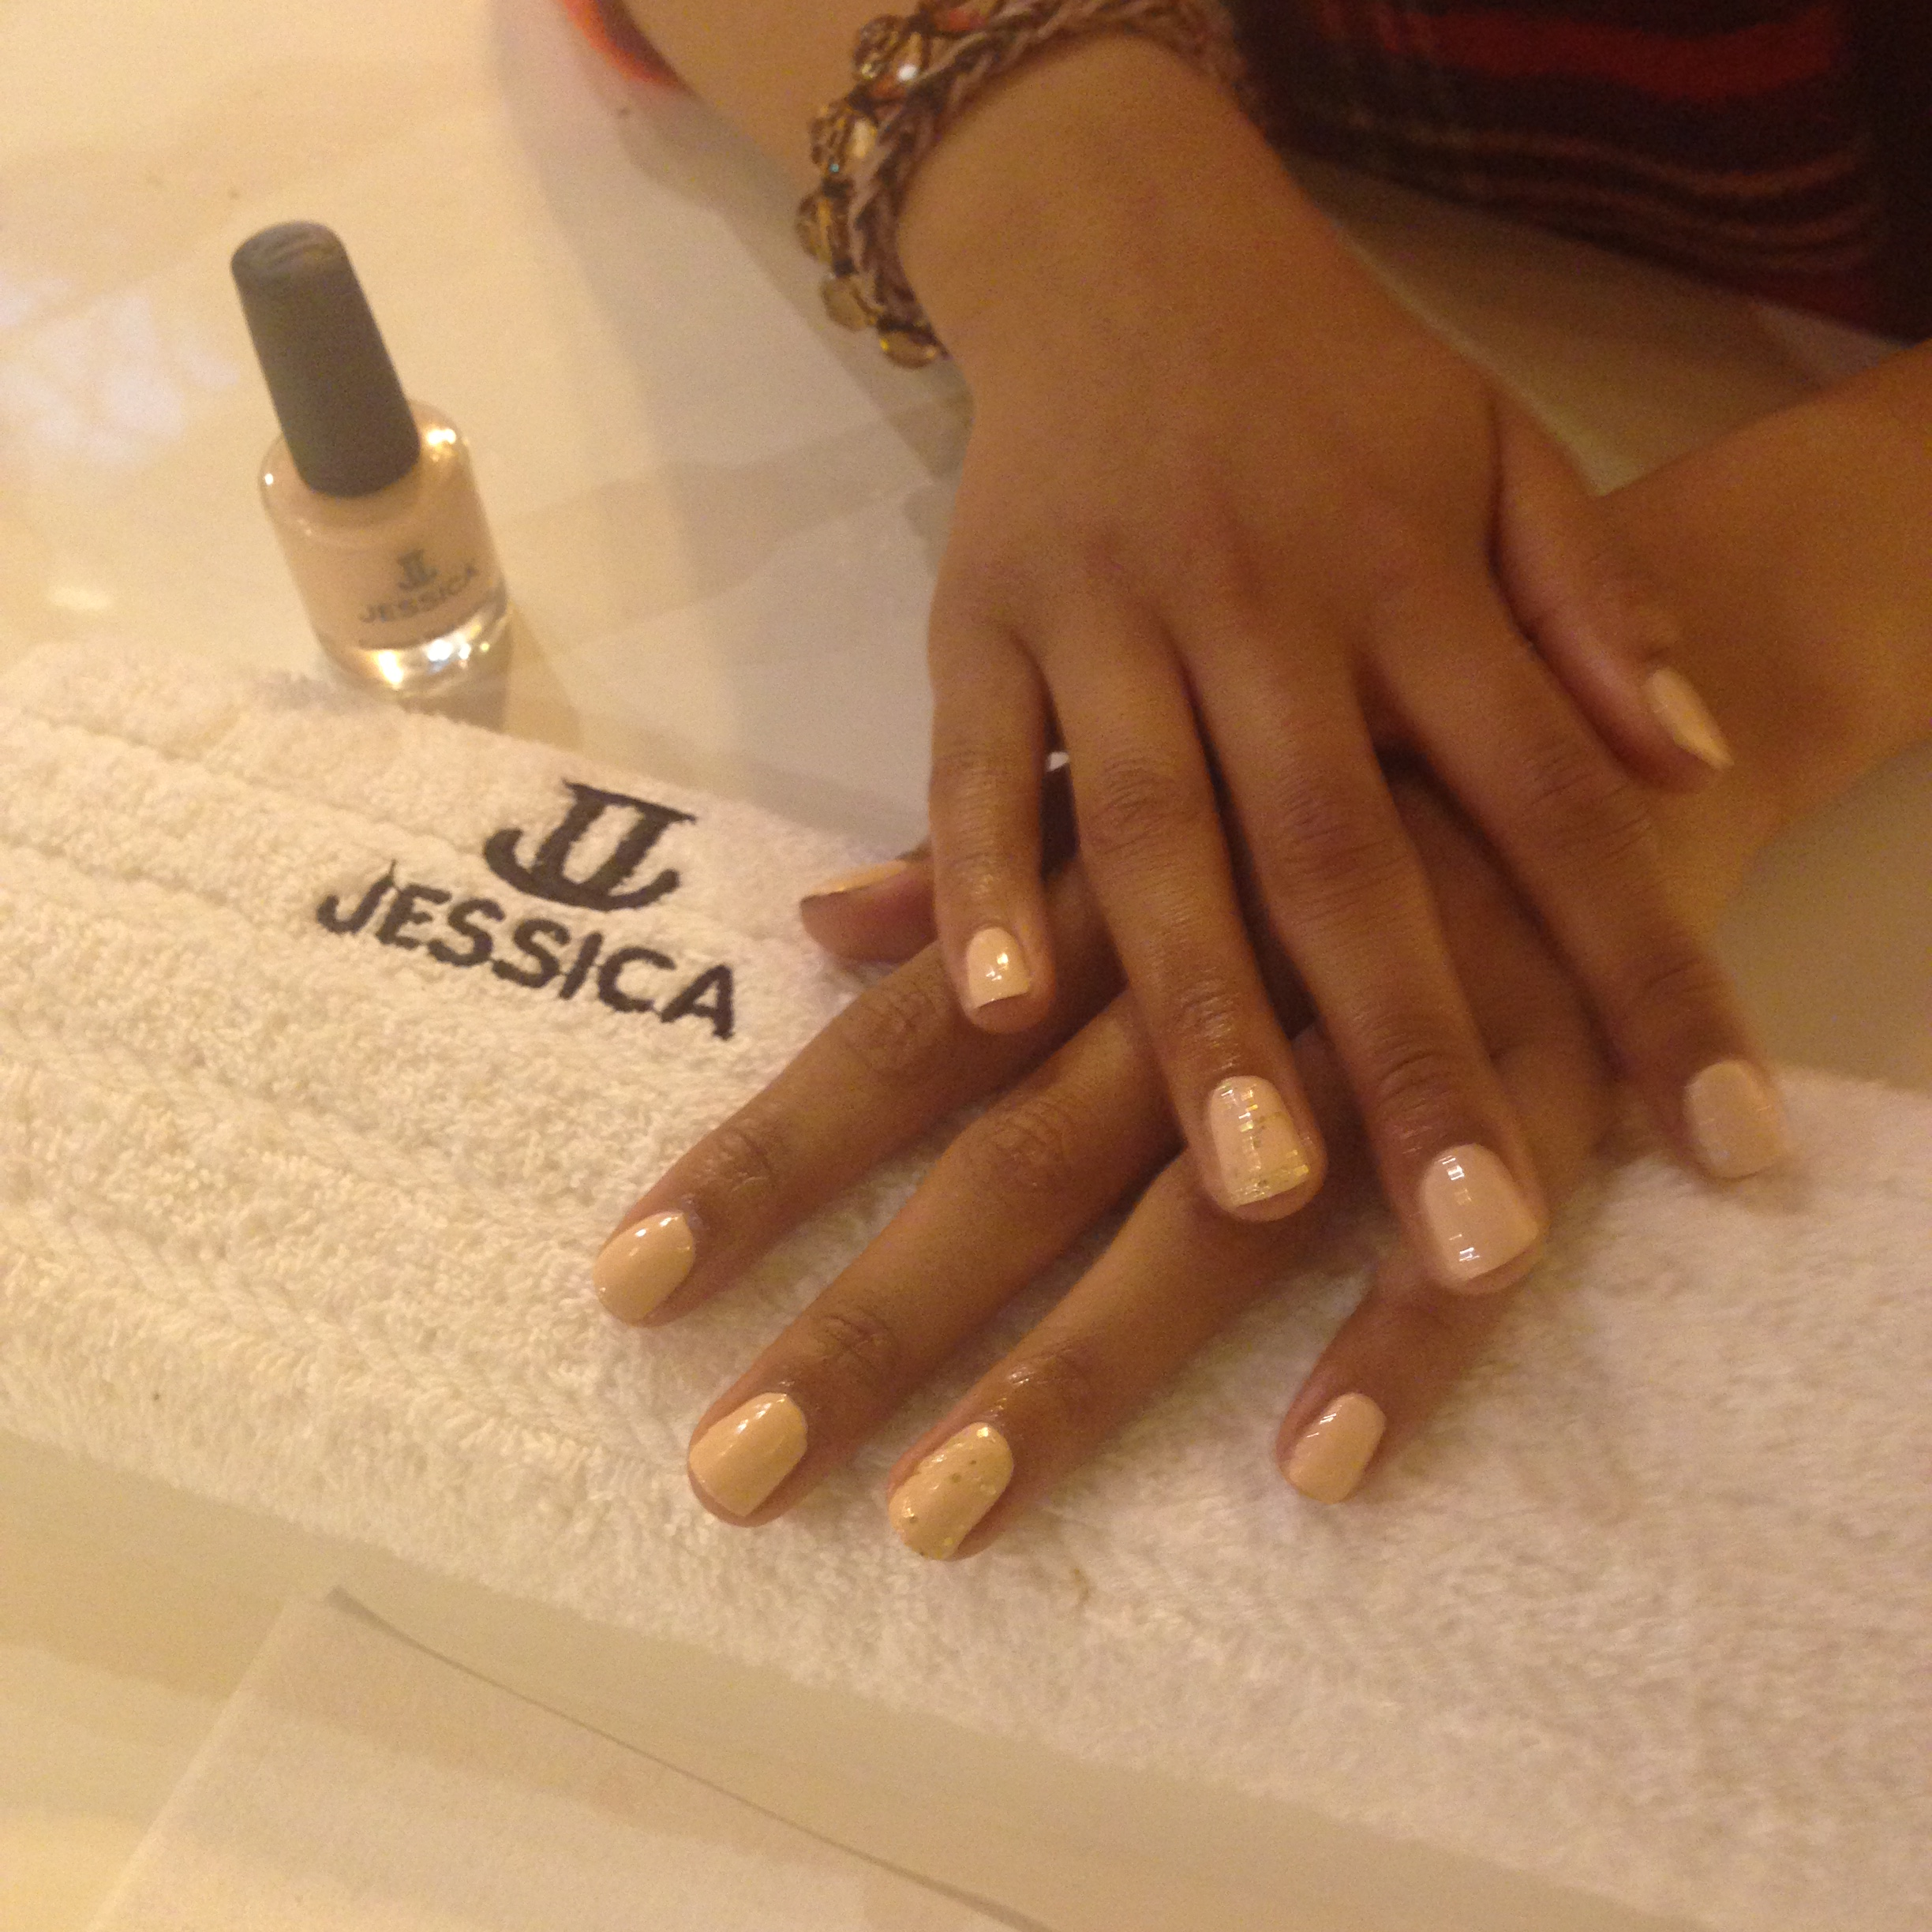 Jessica nail colour with varnish